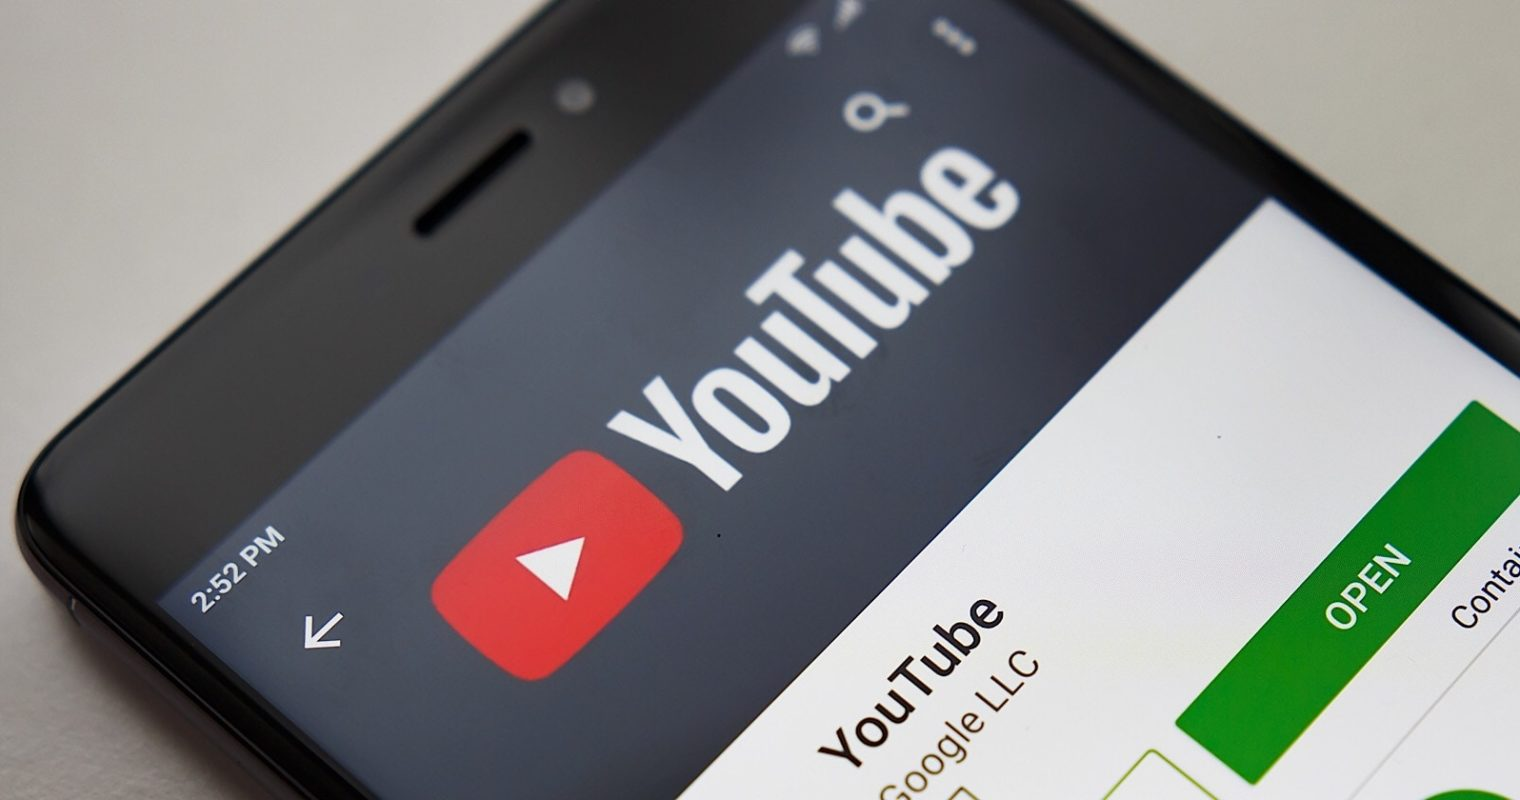 YouTube Shows Searchable Hashtags Above Video Titles